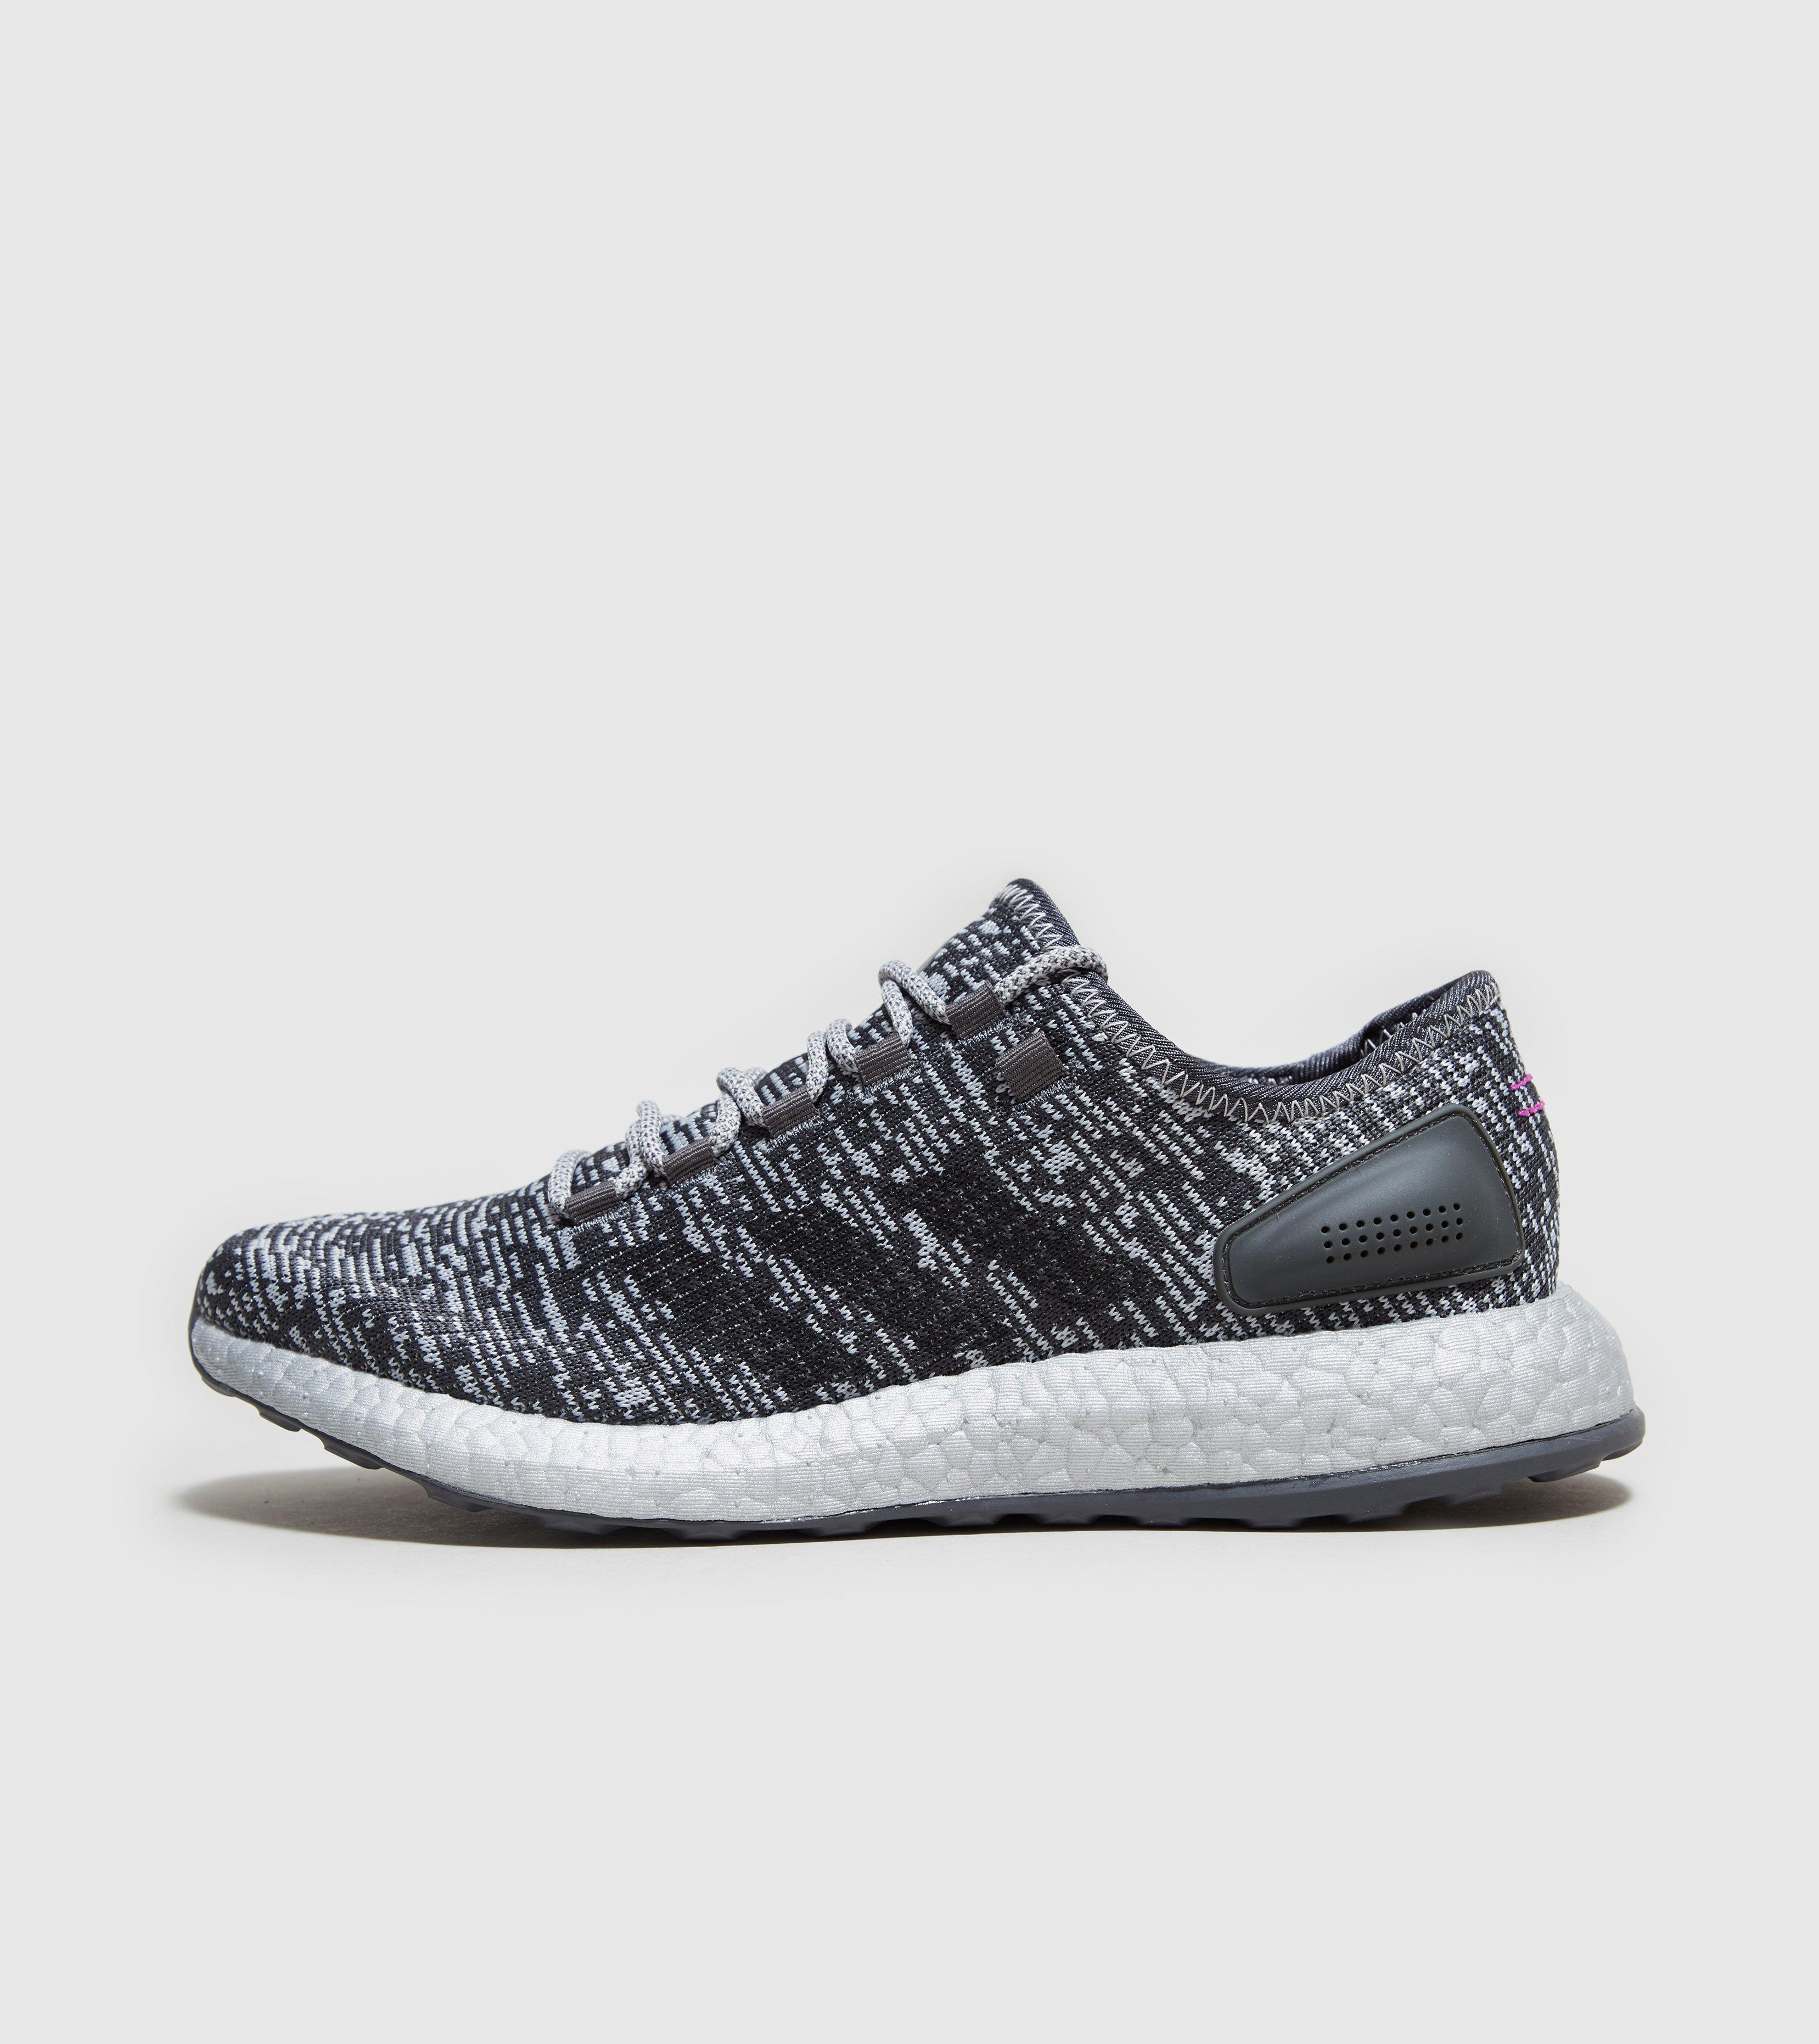 ADIDAS ORIGINALS PURE BOOST ZG 430 WHITE   SILVER   BLACK